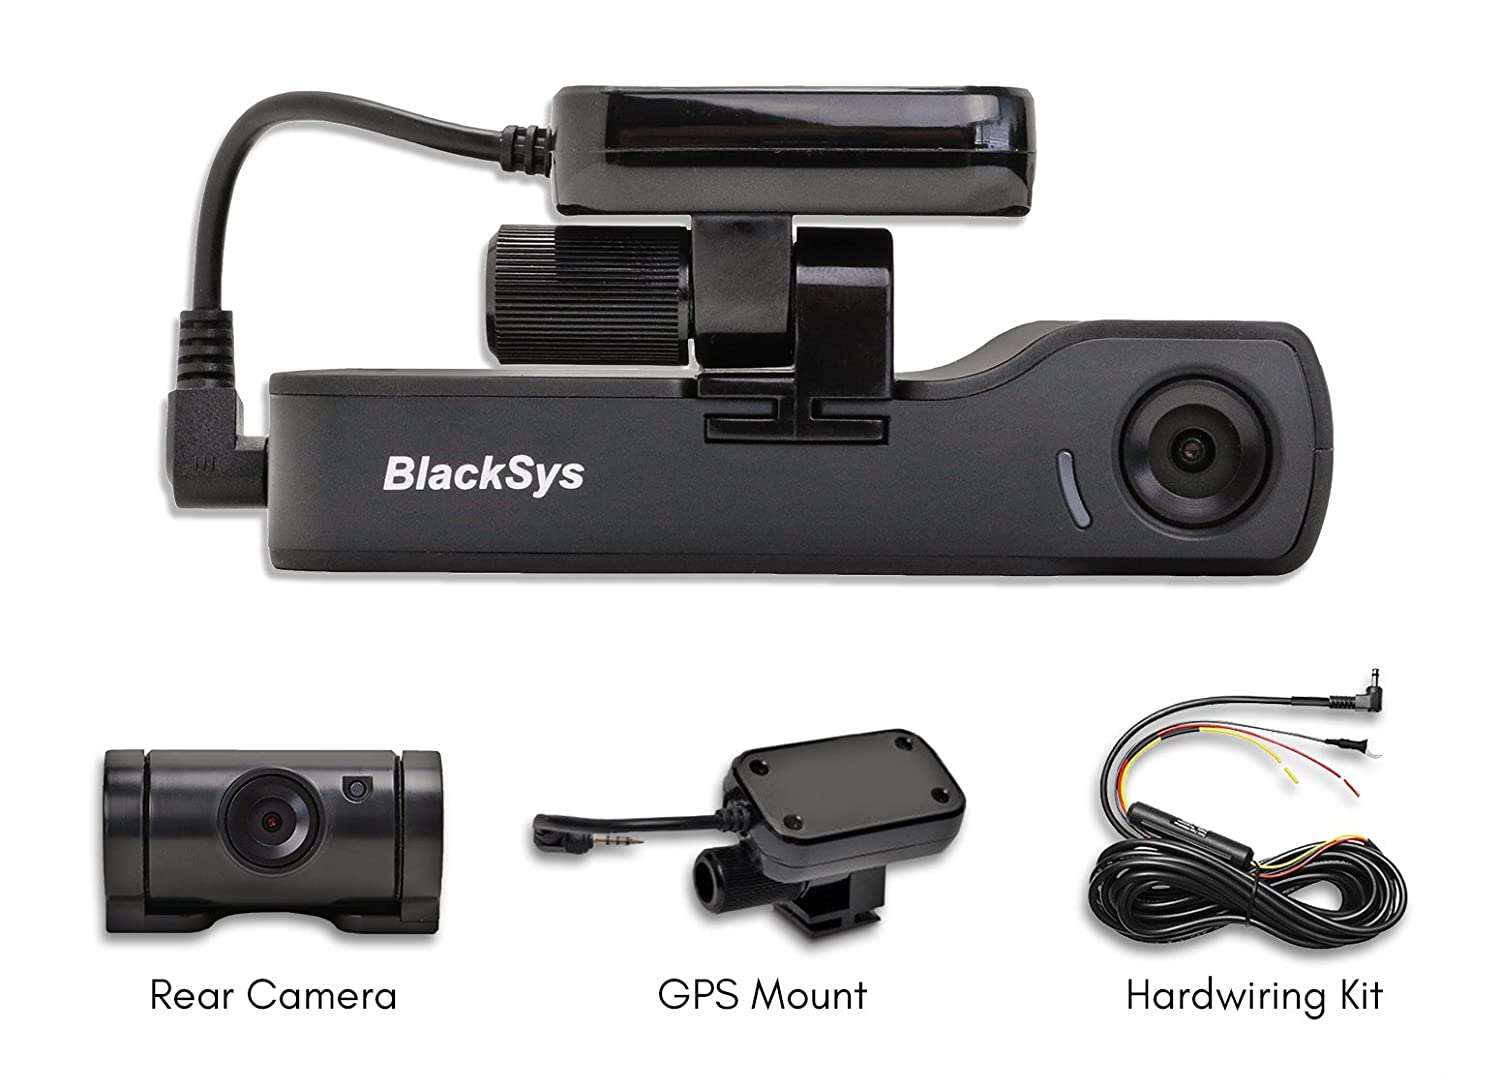 e7fe330fed0 Amazon.com  BlackSys CH-200 2 Channel Dash cam with 1920 x 1080p Full HD